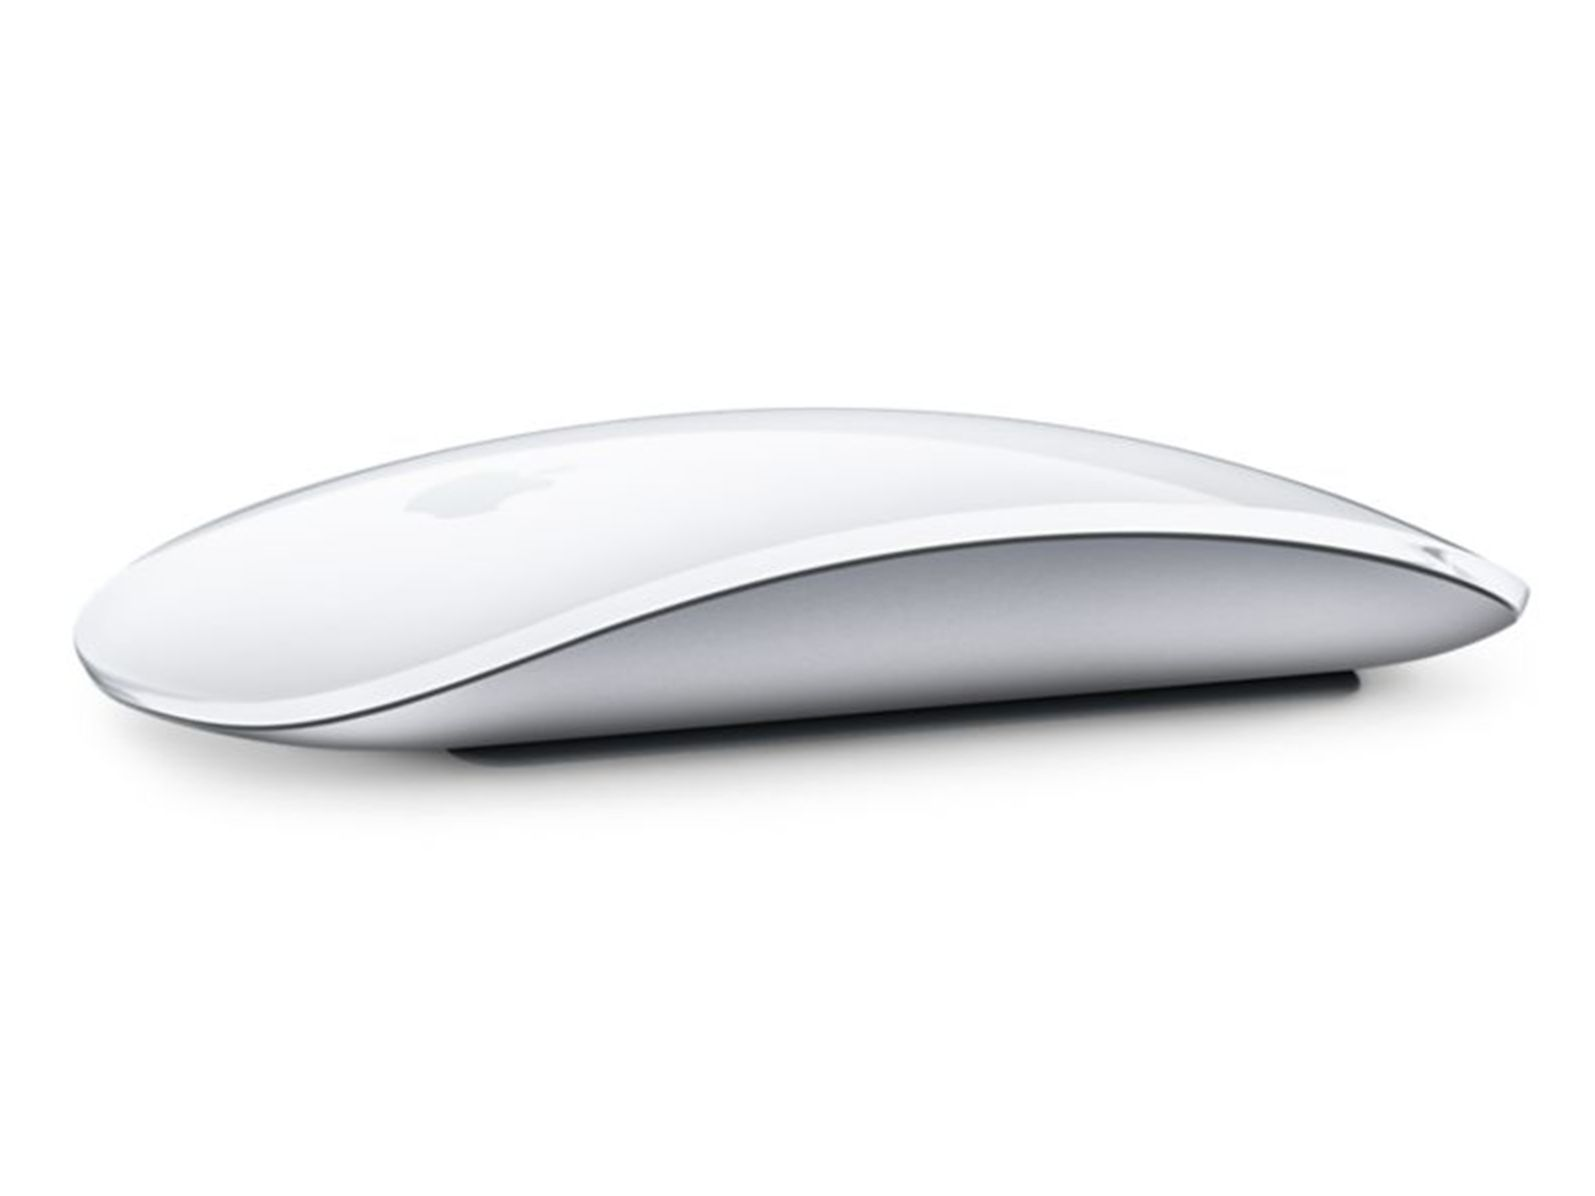 fea79ad5121 Magic Mouse 2: How Good is This Mouse?